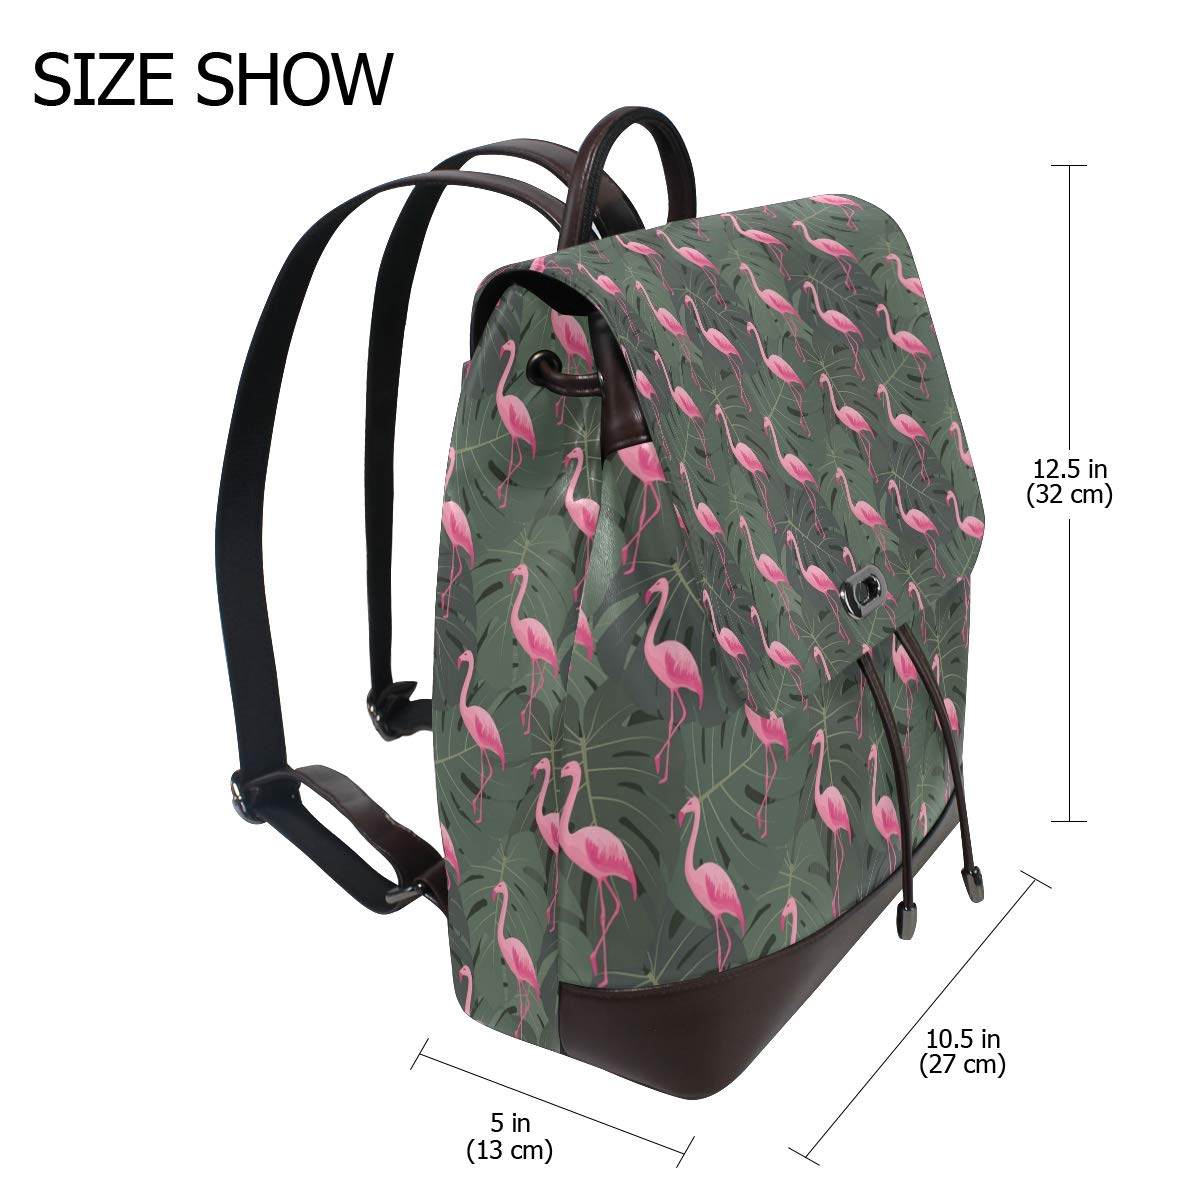 Leather Pattern With Flamingos Backpack Daypack Bag Women